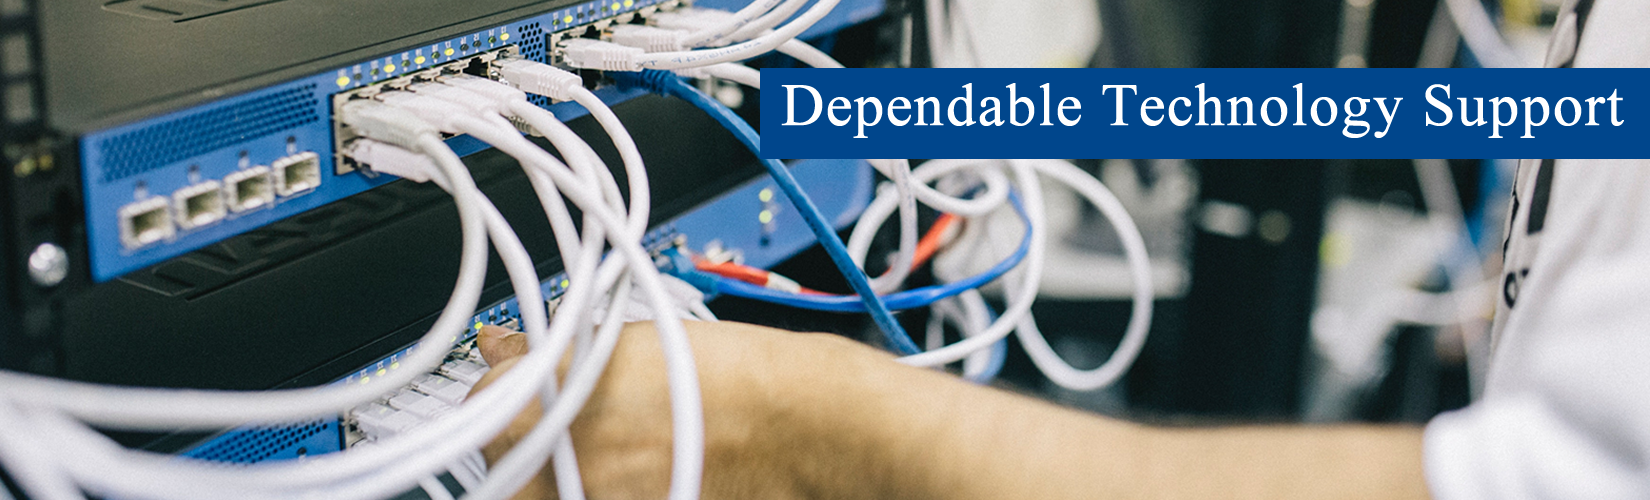 Dependable Technology Support for Your Business  | Second Creek Technologies